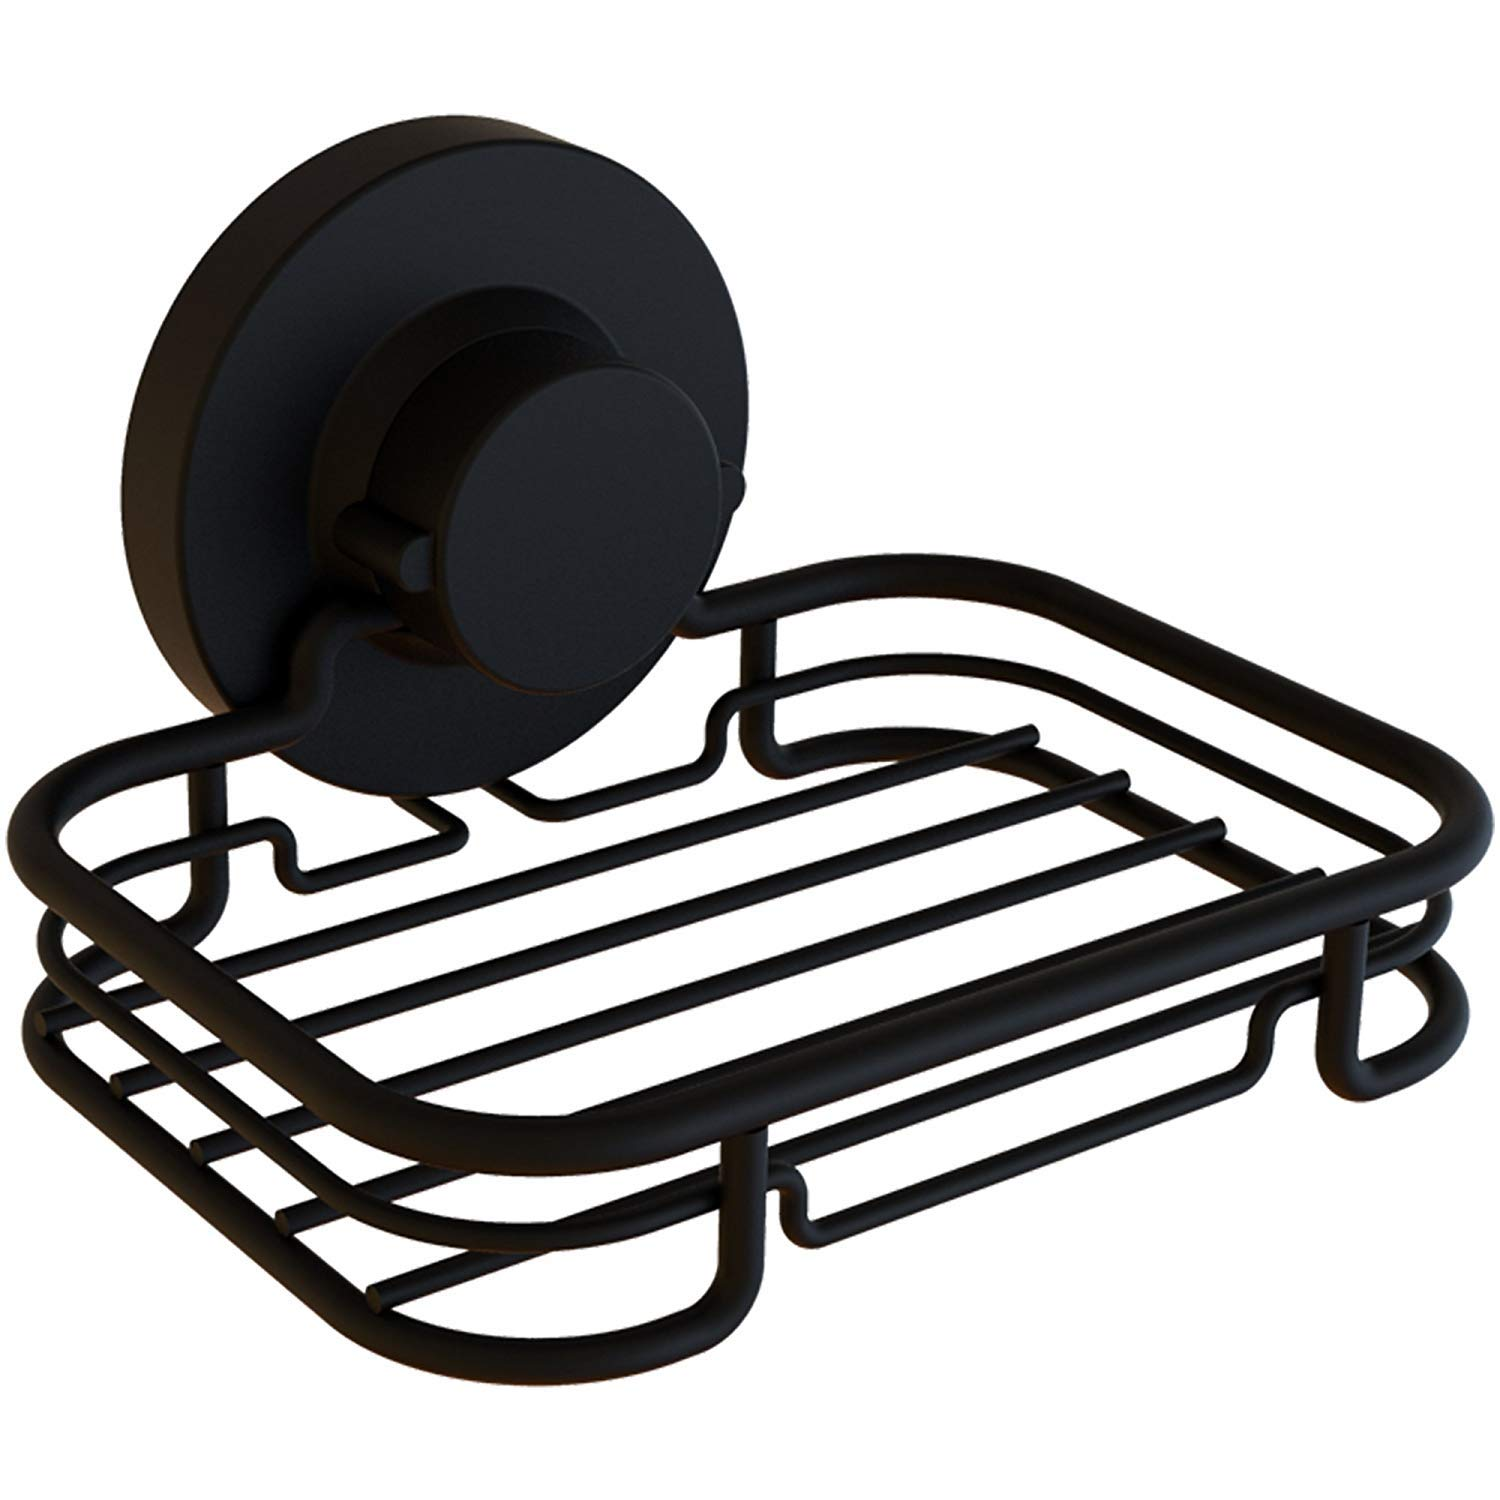 Gecko-Loc Rustproof Black Vacuum Suction Soap Dish Holder for Shower or Bath, Sponge Holder Sink Organizer - Easy Installation and No Drilling Stainless Steel - Adhesive Disk Now Included by Gecko-Loc